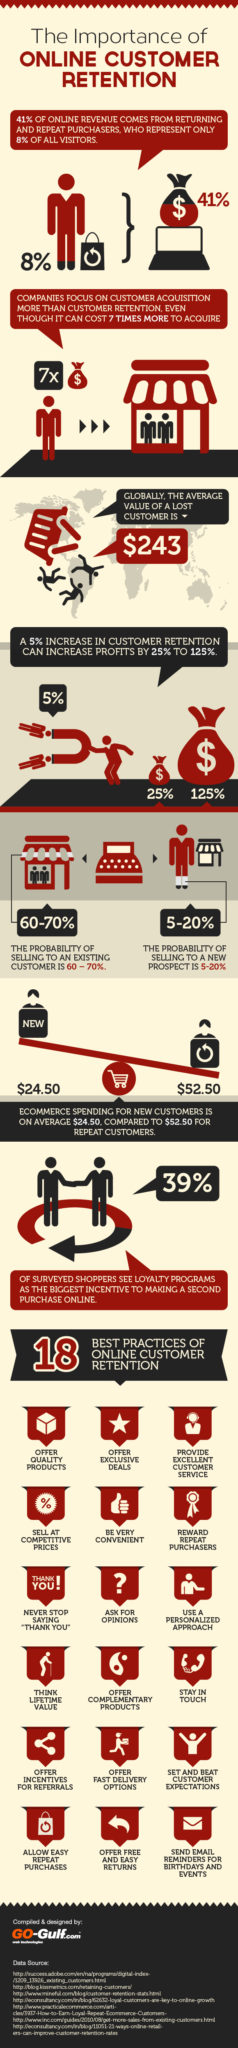 online-customer-retention (infographic)